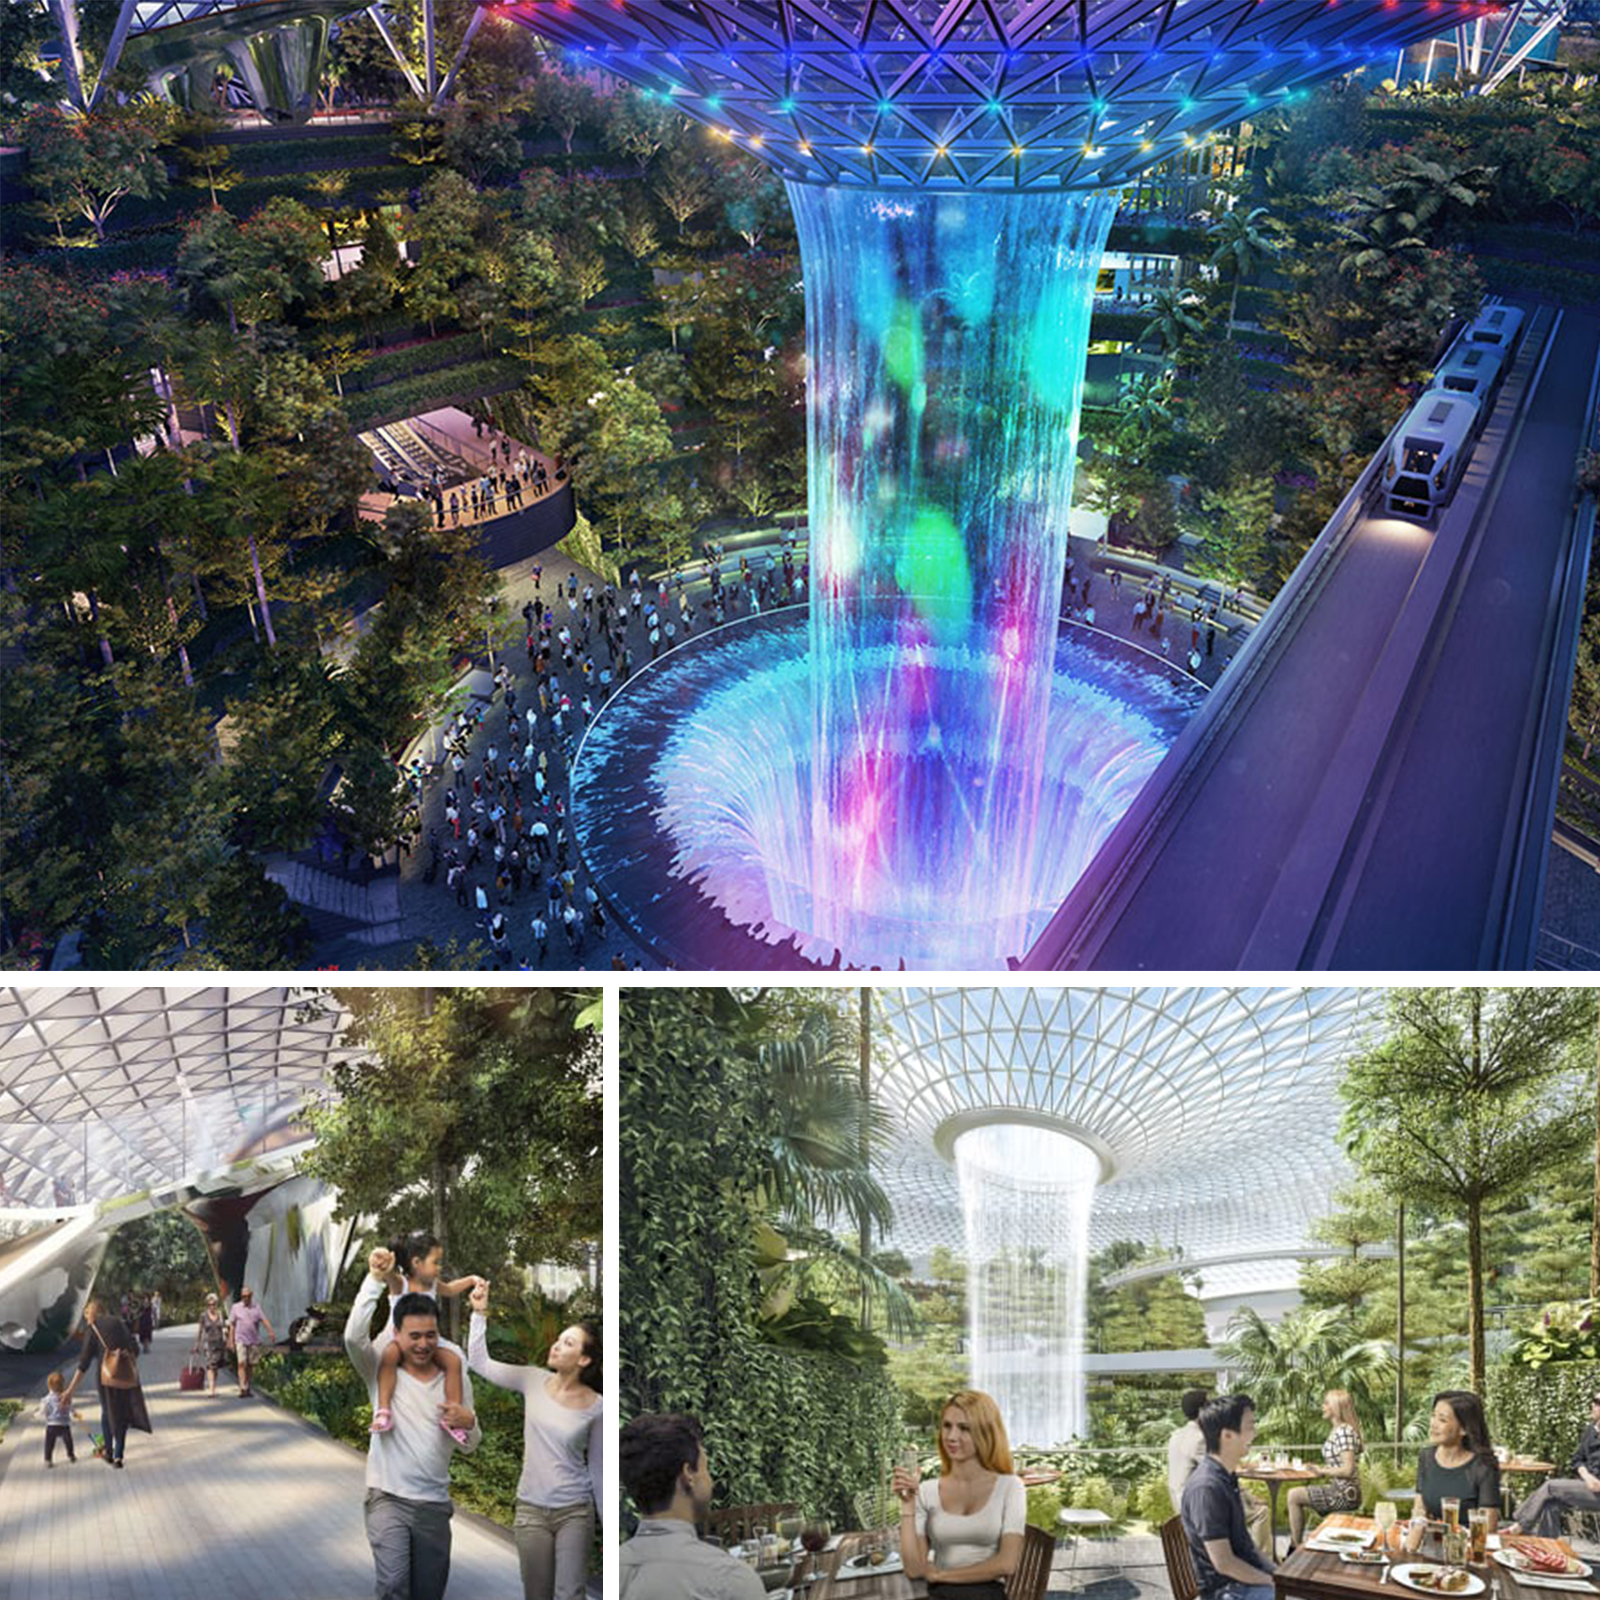 The Rain Vortex will be the world's tallest indoor waterfall dumping as much as 10,000 gallons of water a minute. At night it will be transformed by a light and sound show.